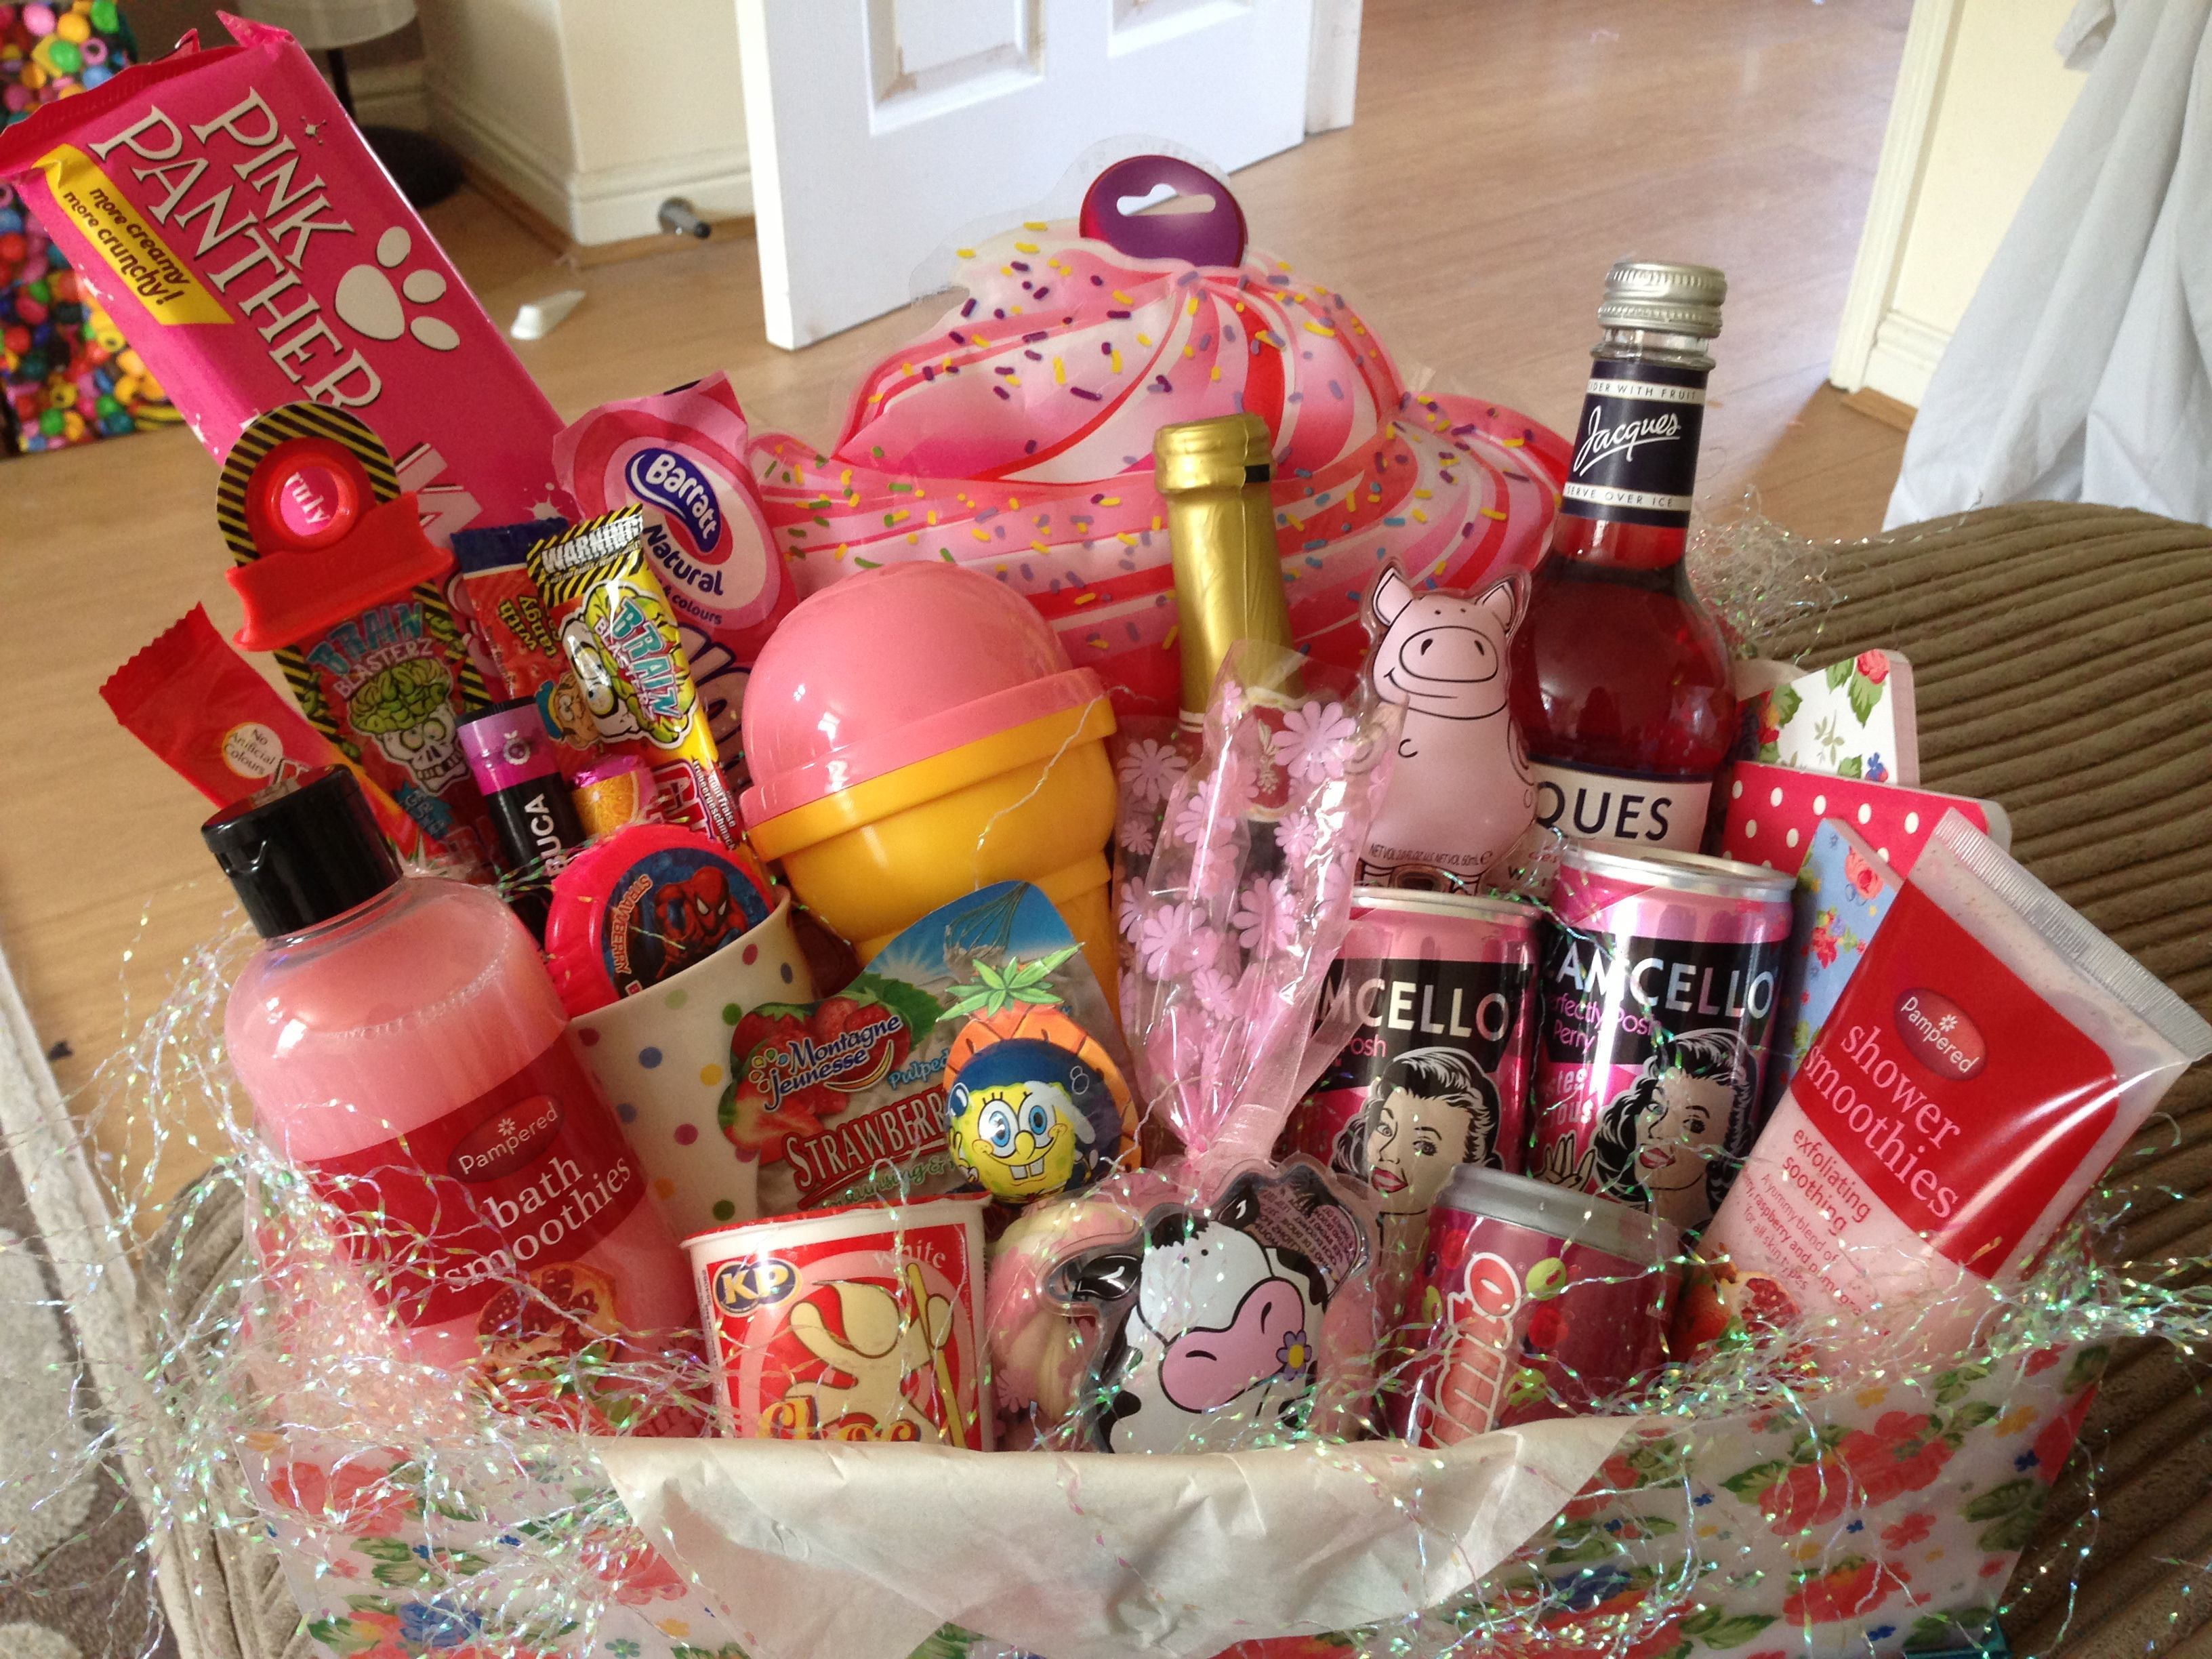 Girly hamper for girls night in! Given to a good friend